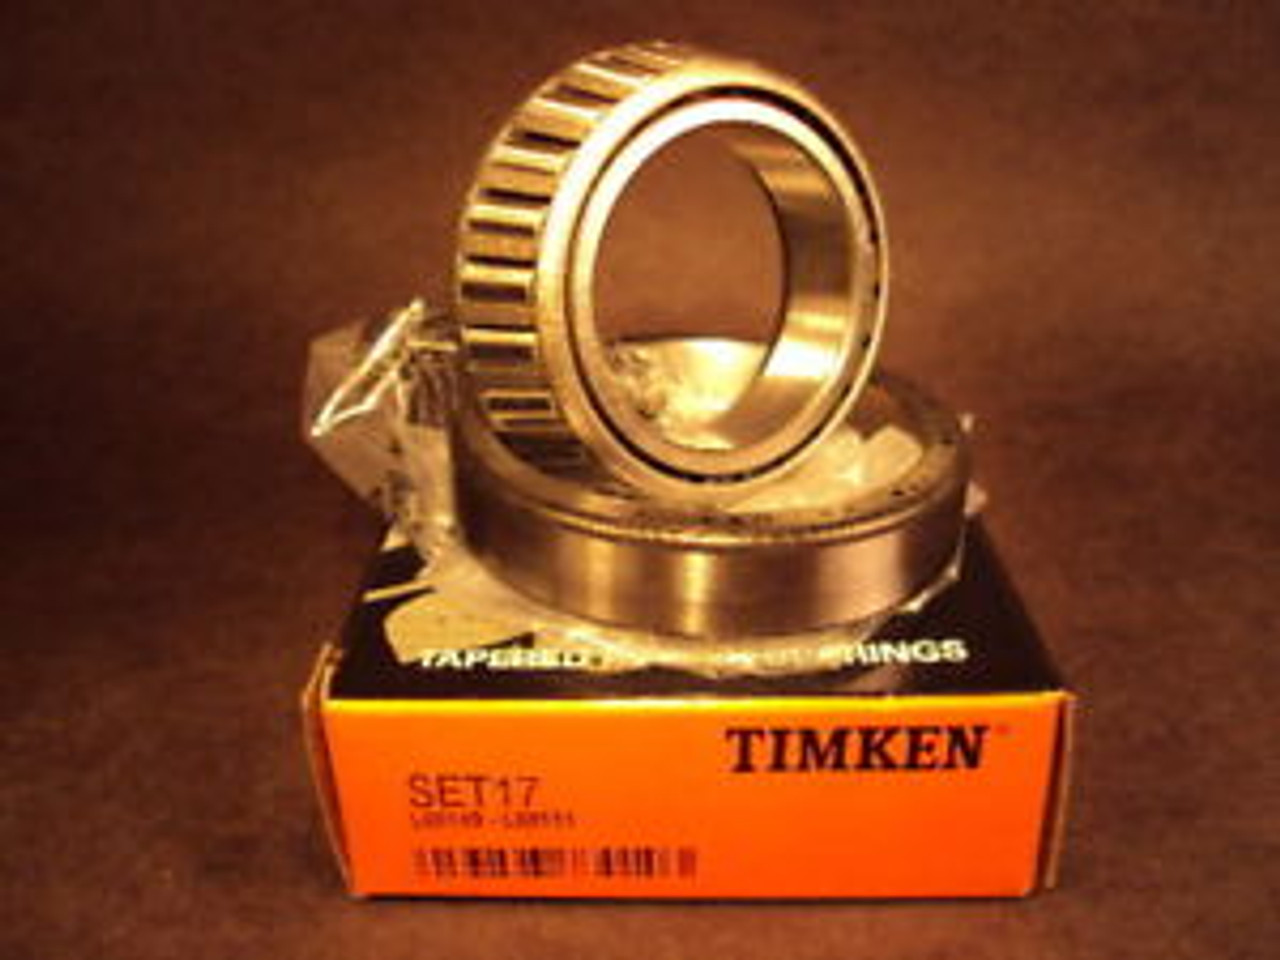 LM102949 // LM102911 Timken Set18,Set 18 Bearing Cup and Cone Set